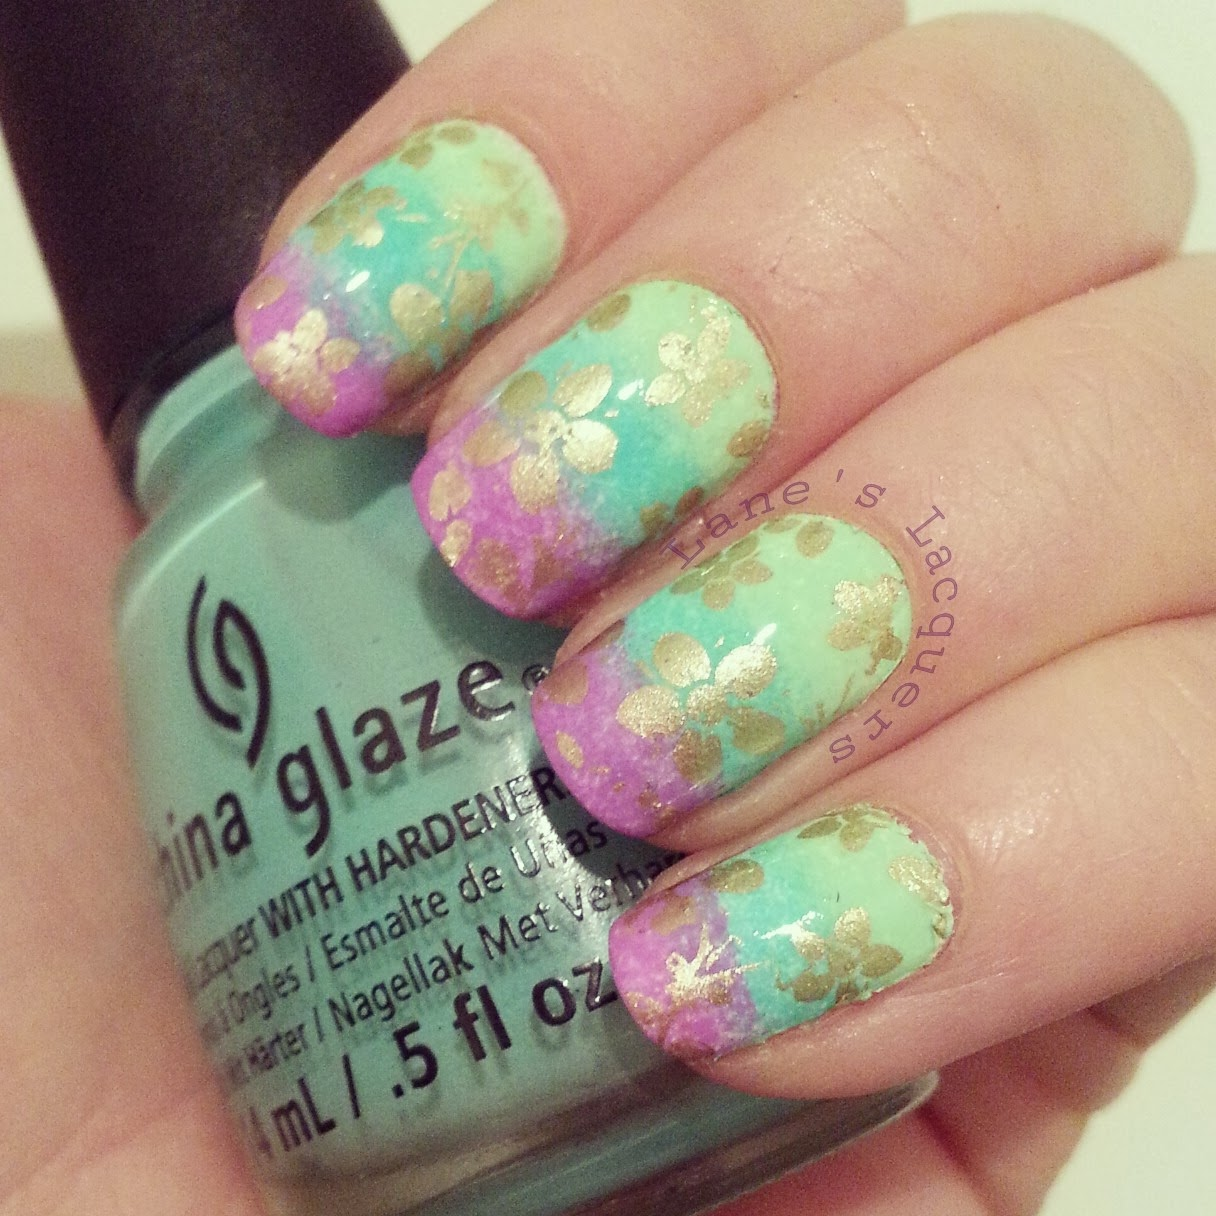 tri-polish-challenge-green-blue-purple-ombre-nails